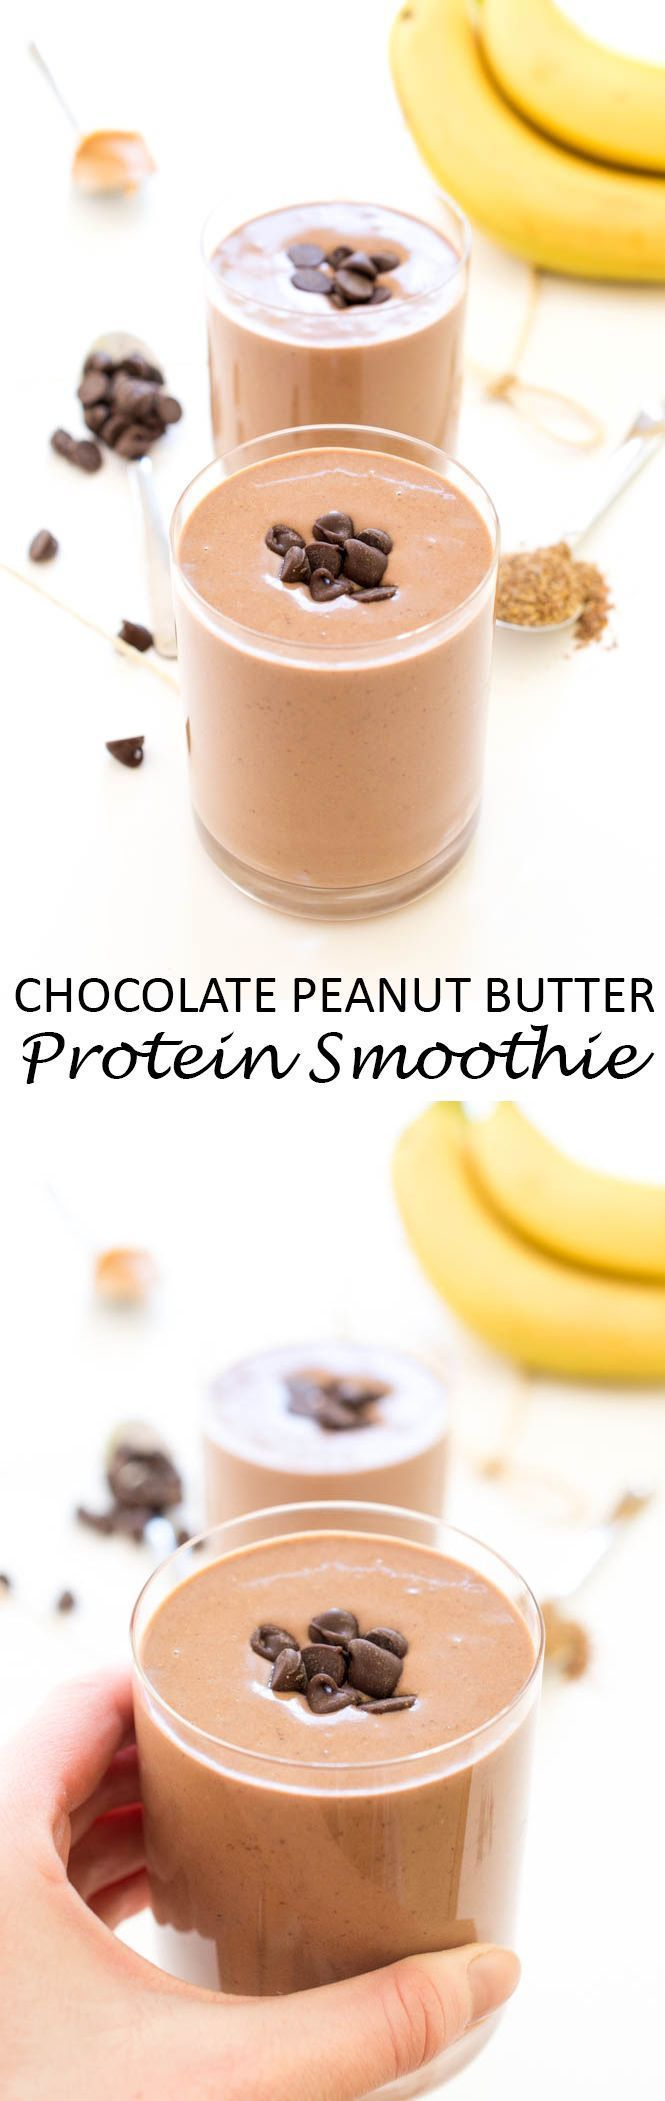 Super Easy 5 Minute Chocolate Peanut Butter Protein Smoothie. A healthy smoothie that tastes like dessert! The perfect way to start your day.   chefsavvy.com #recipe #chocolate #smoothie #protein #breakfast #snack